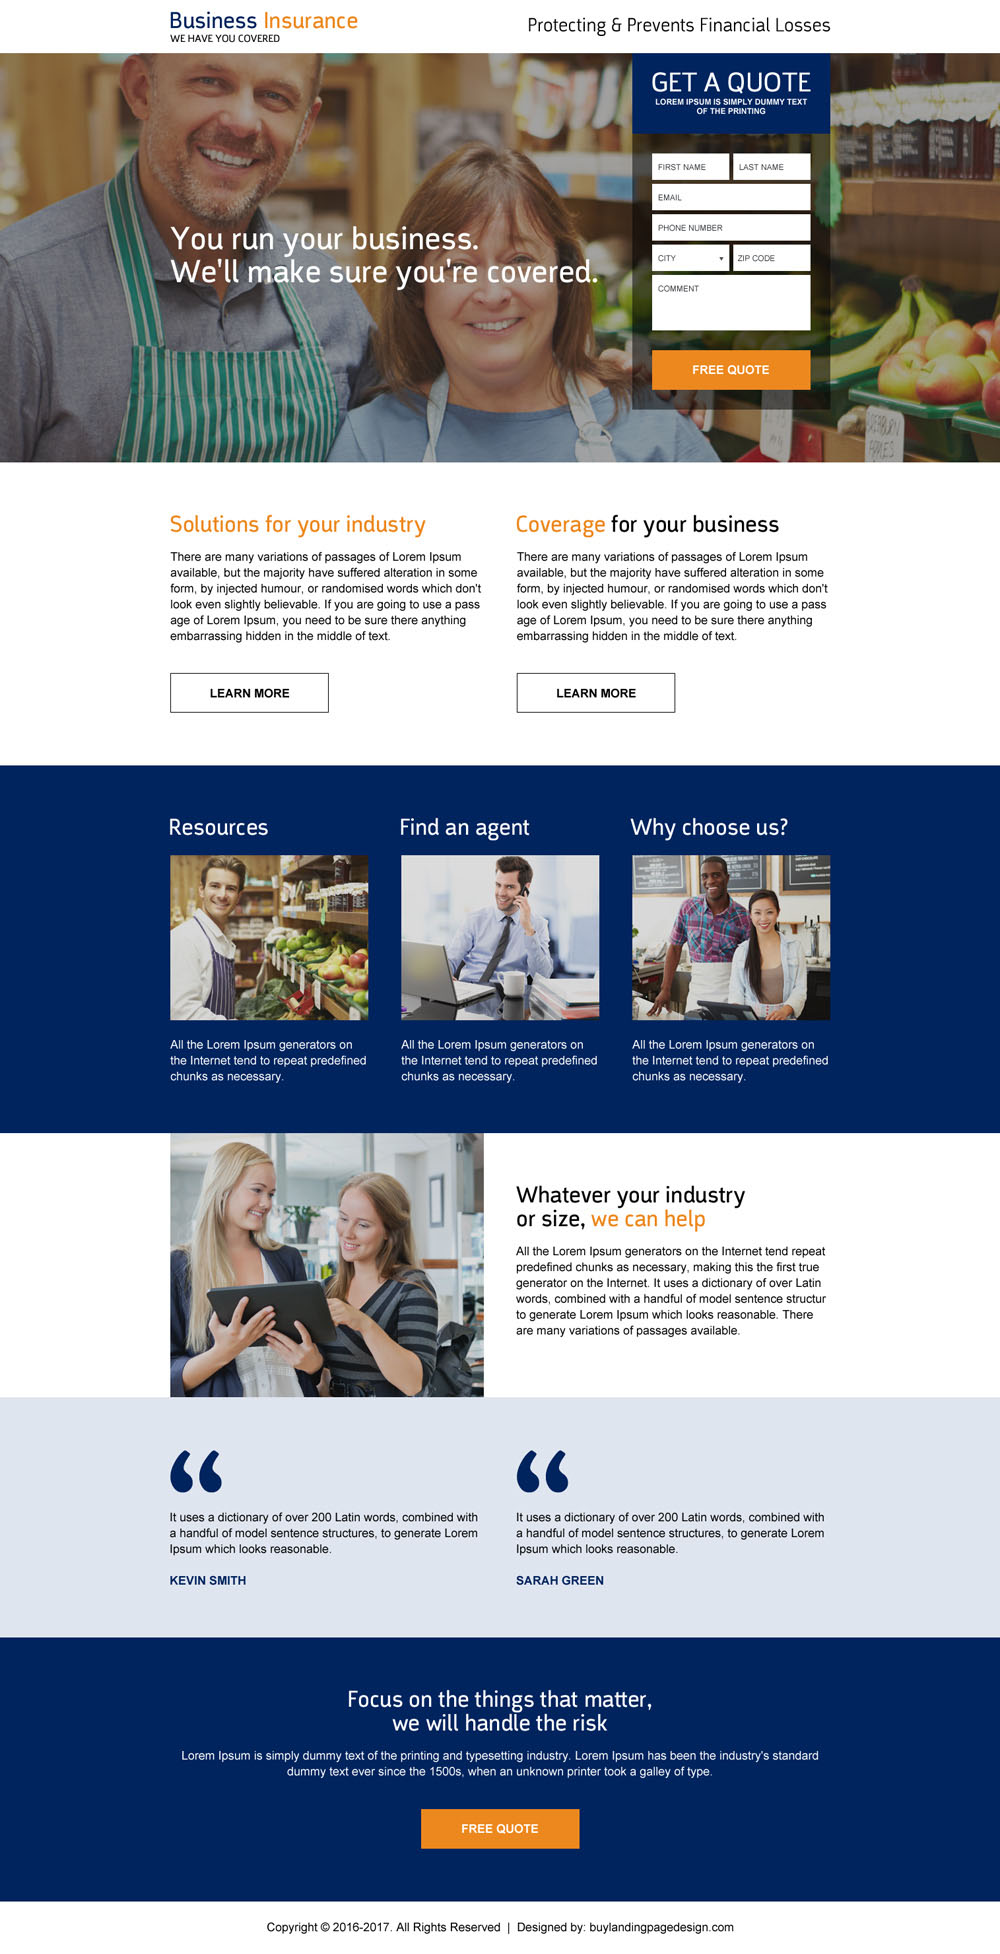 low-cost-small-business-insurance-free-quote-lead-capture-landing-page-design-004